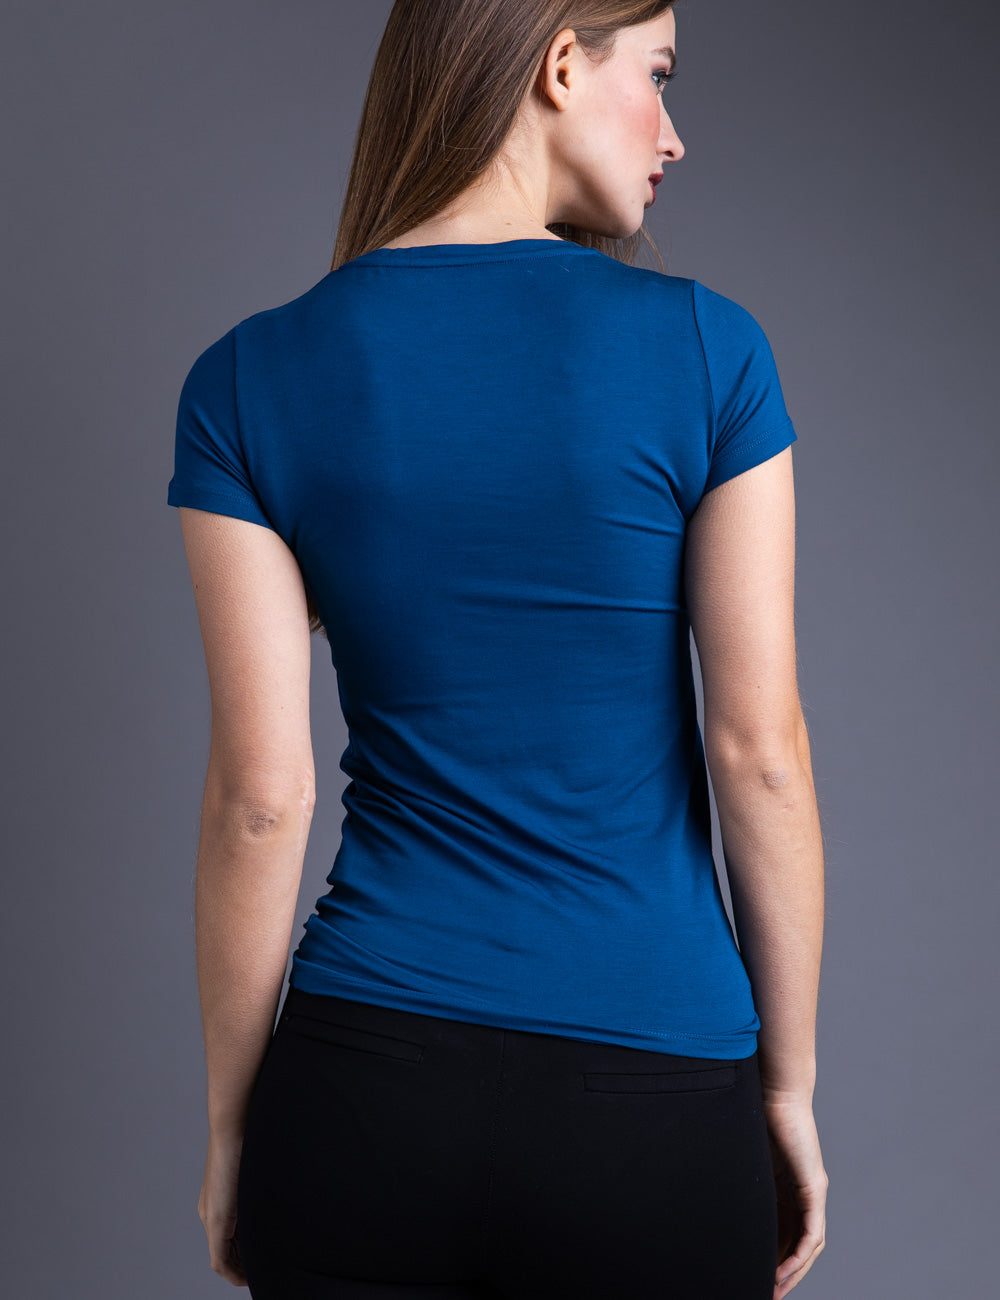 Majestic Short Sleeve Crewneck Tee with Finished Trim in Notte